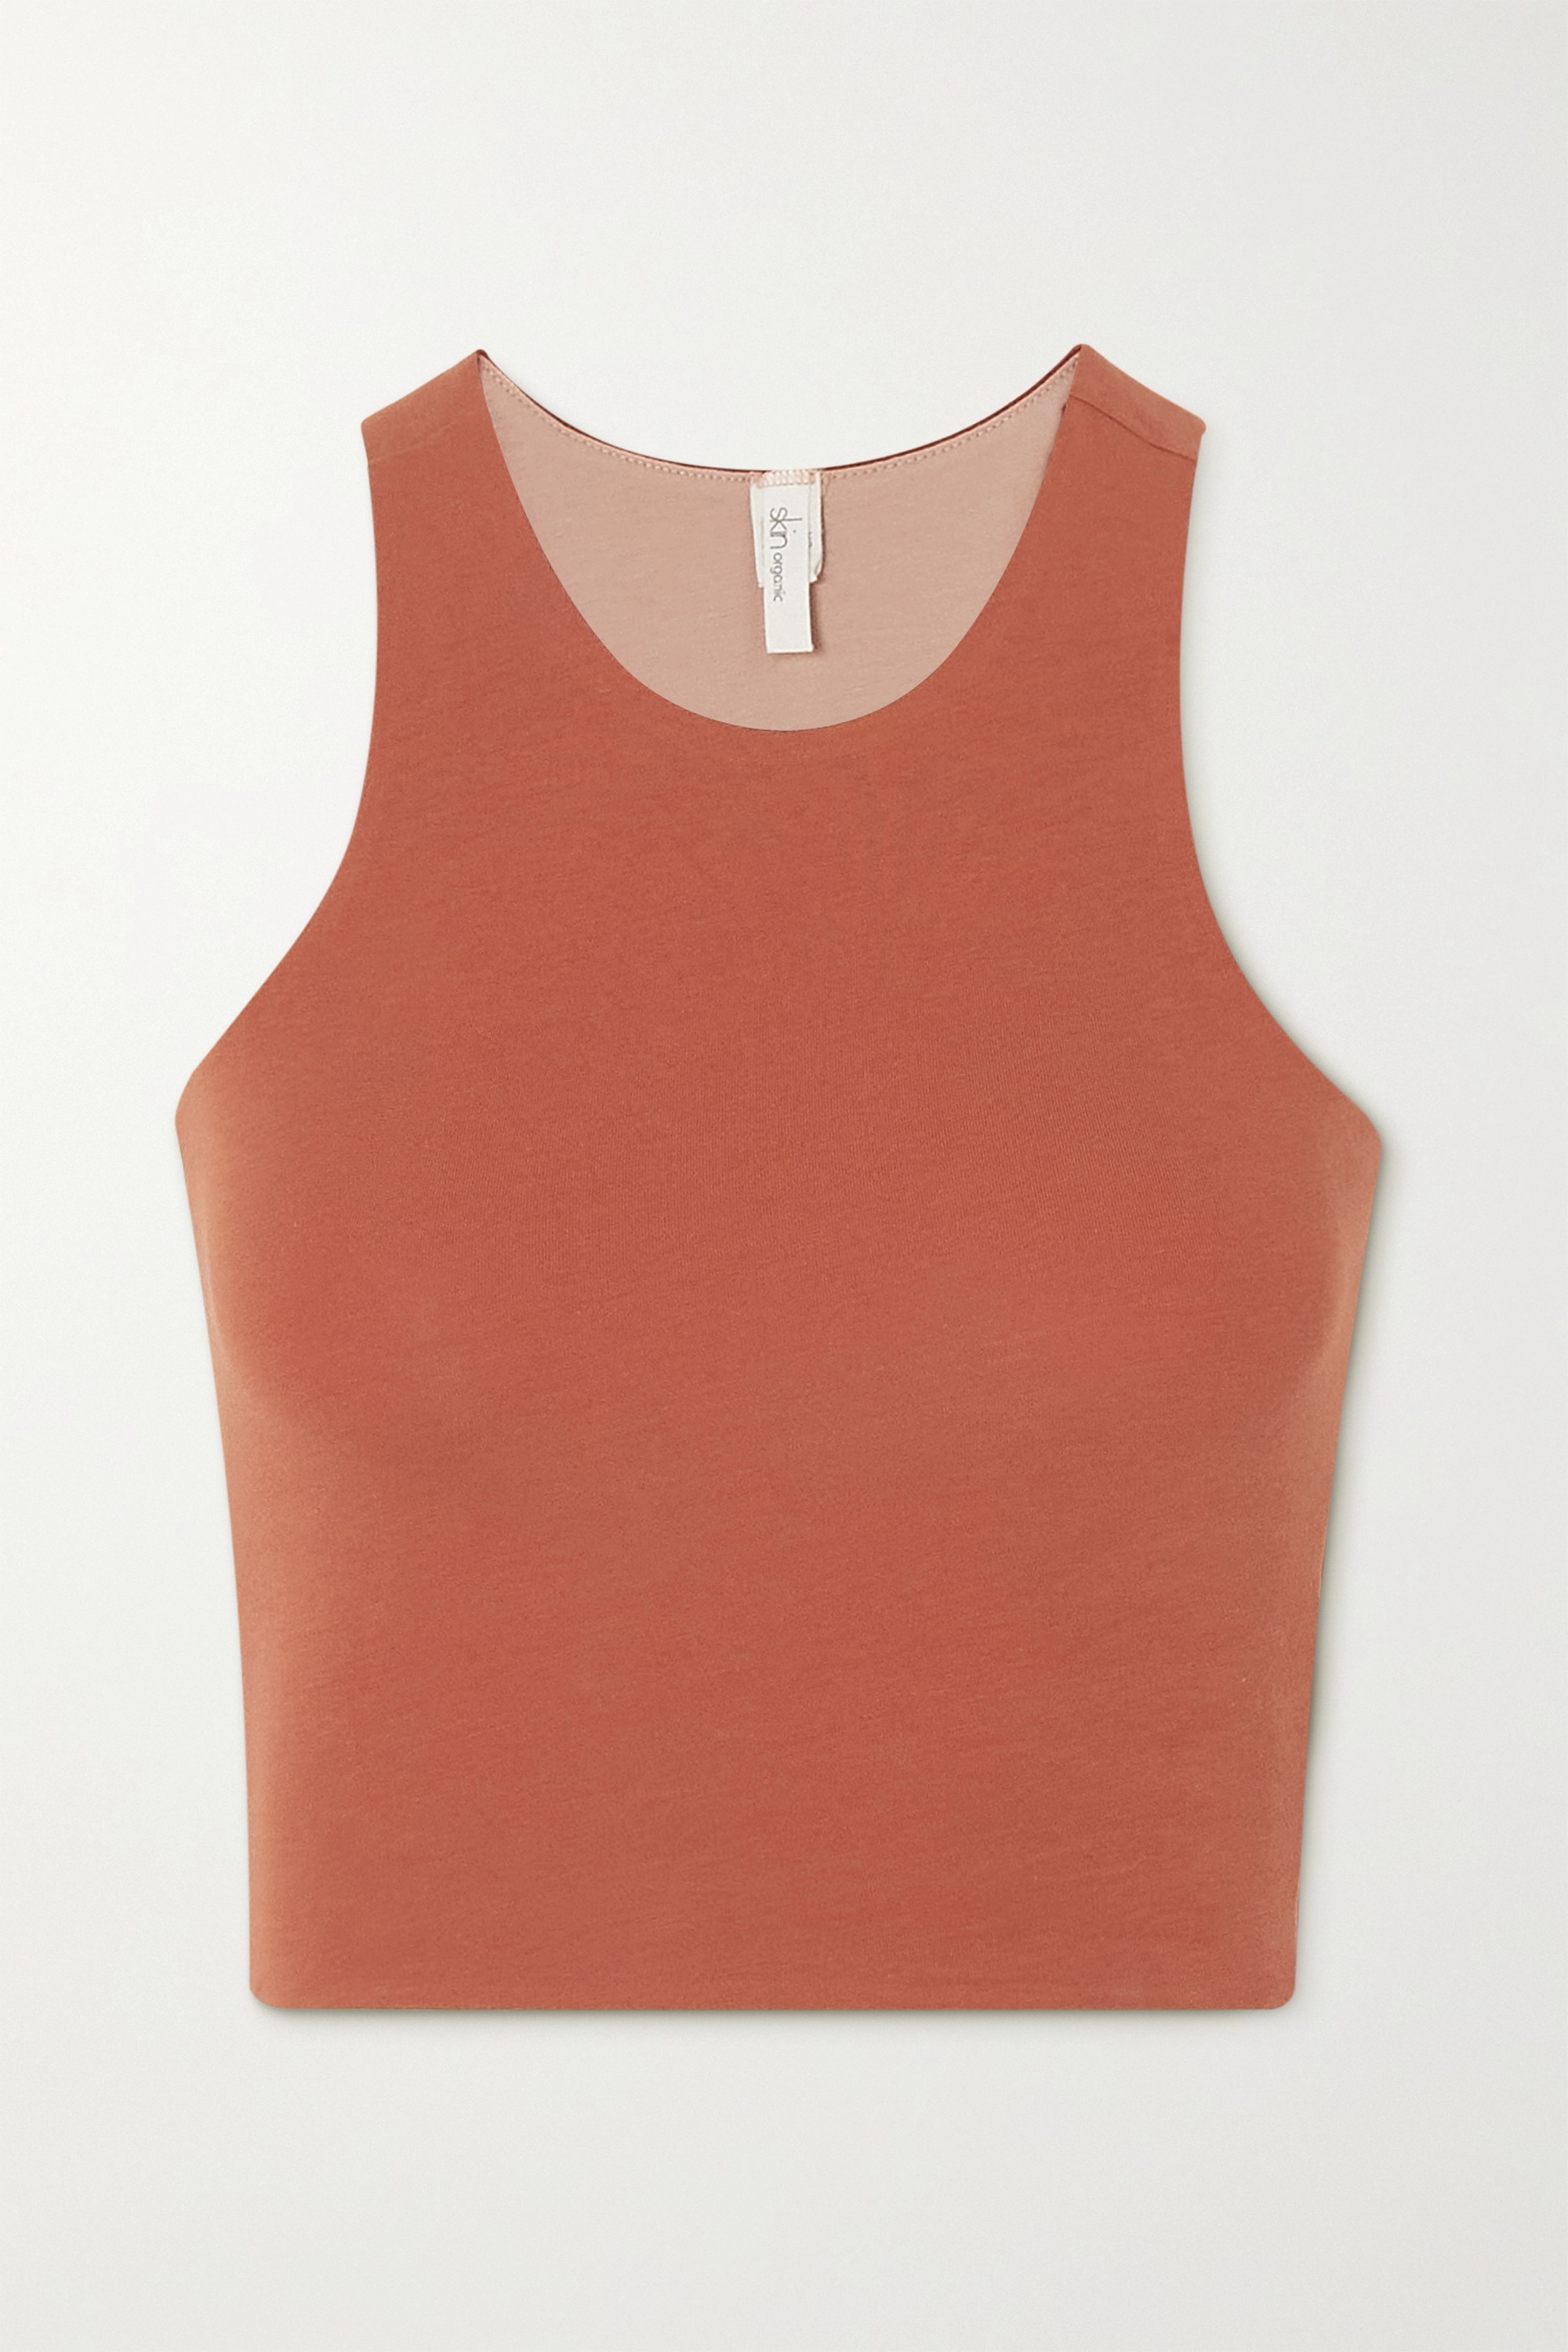 Skin - + NET SUSTAIN Calliope reversible cropped stretch organic Pima cotton-jersey tank